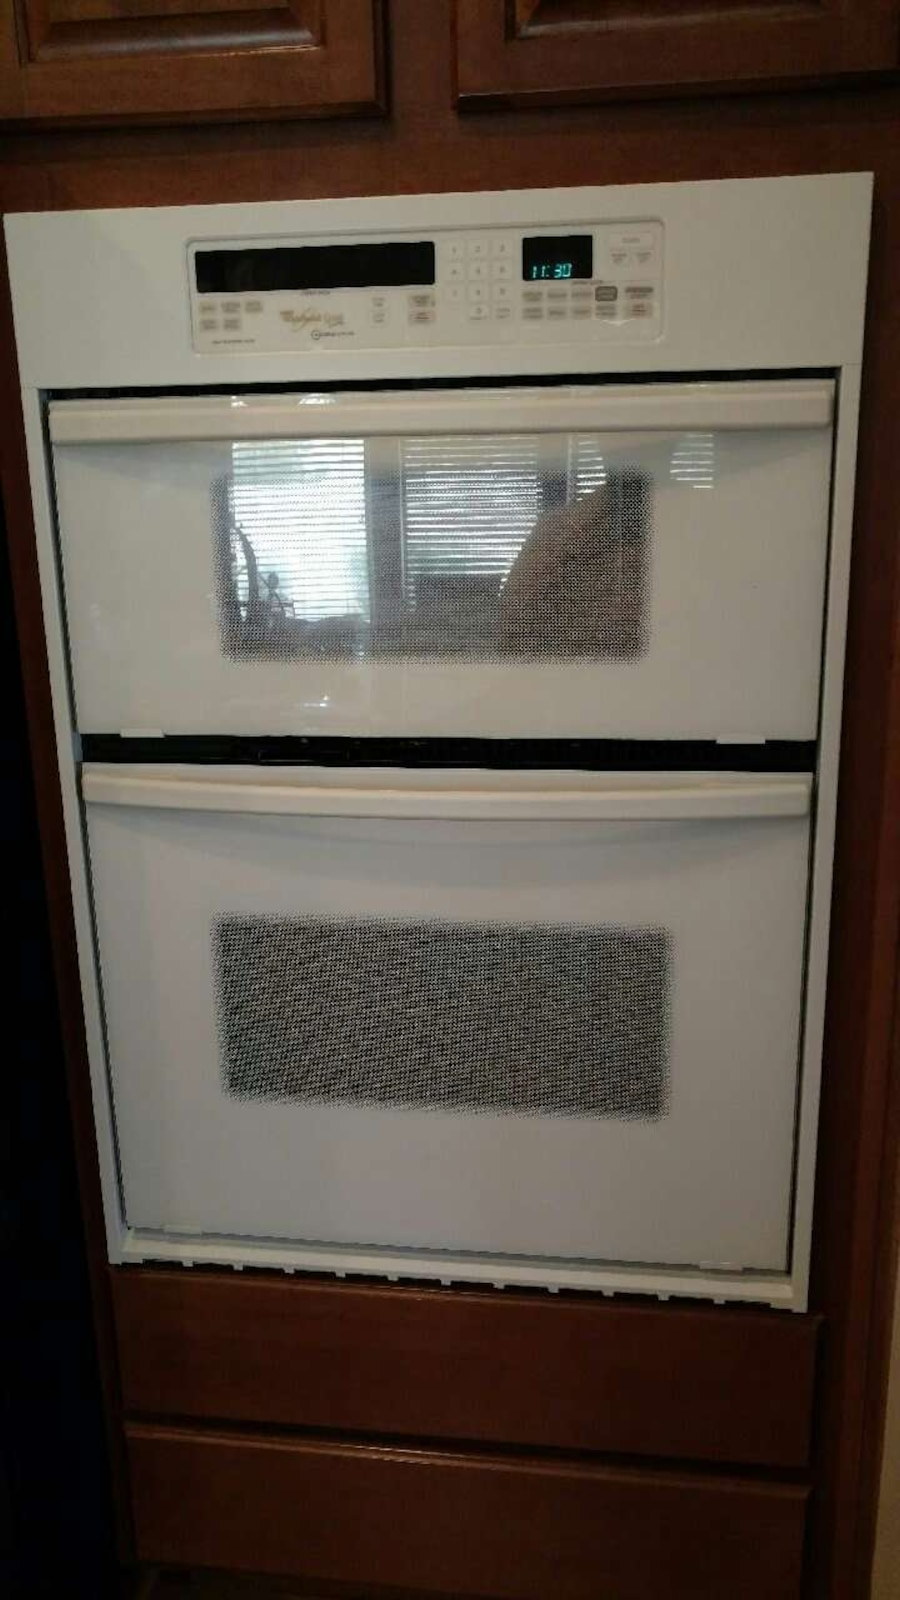 whirlpool gold series convection microwave manual